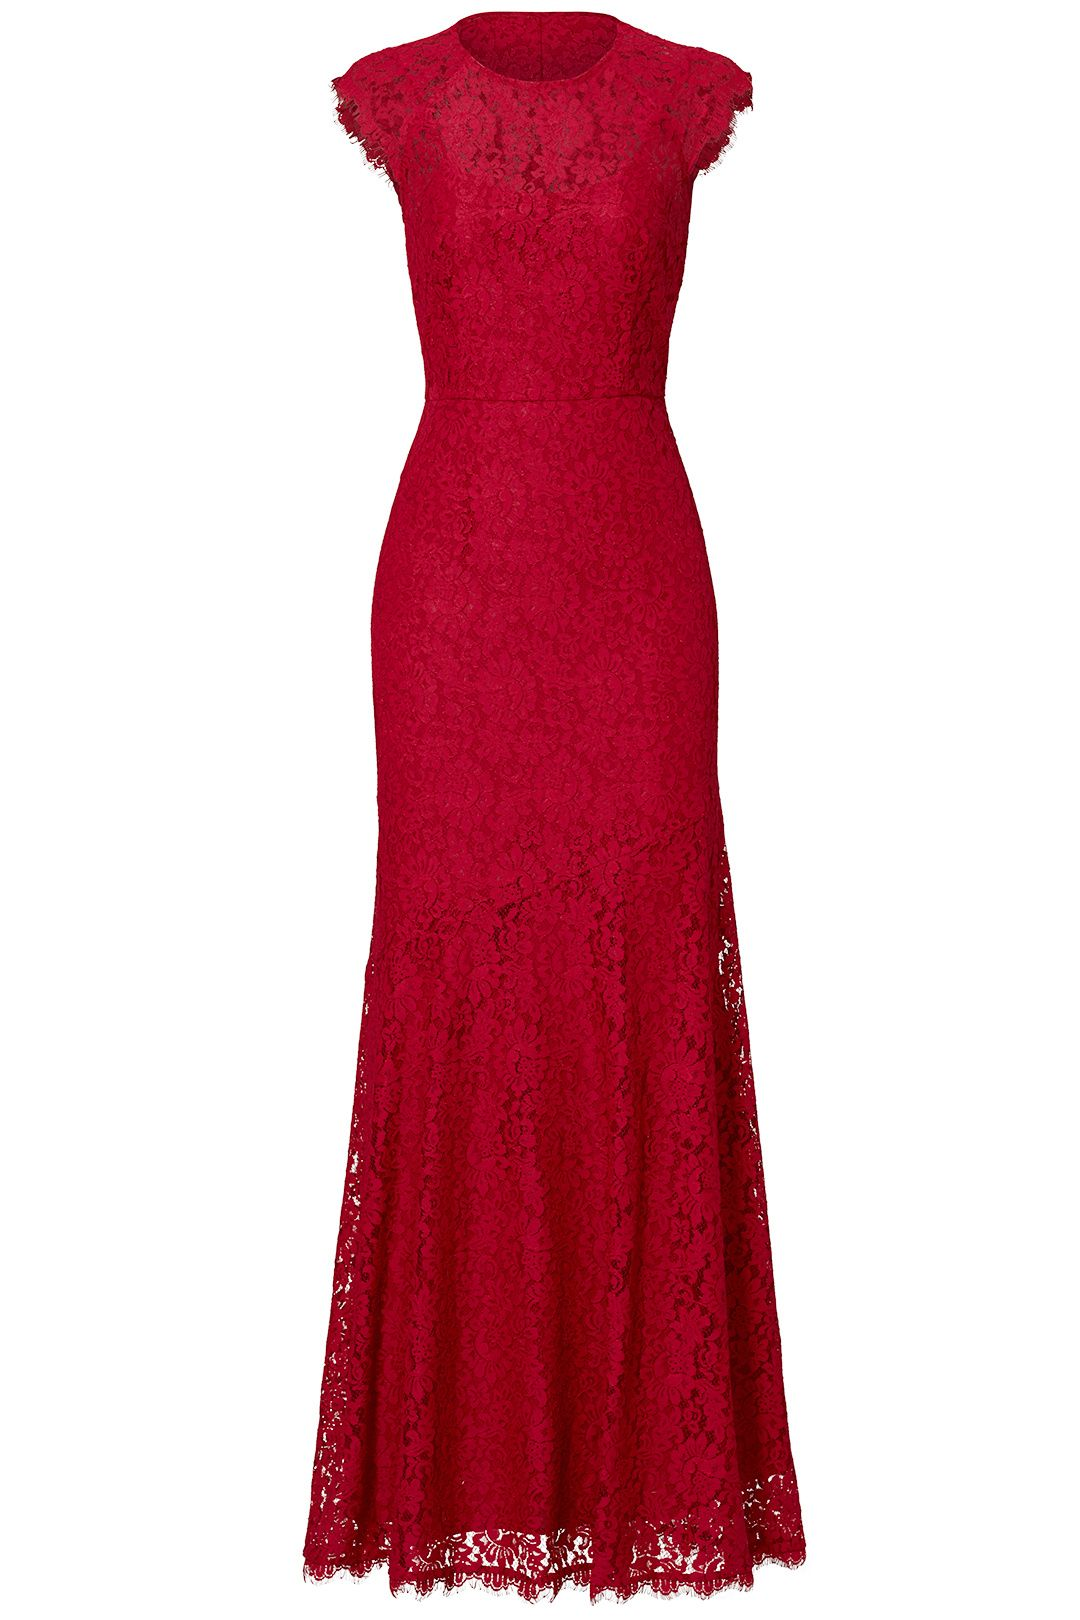 Red Rose Cap Sleeve Gown by Shoshanna for $70 - $90 | Rent the ...